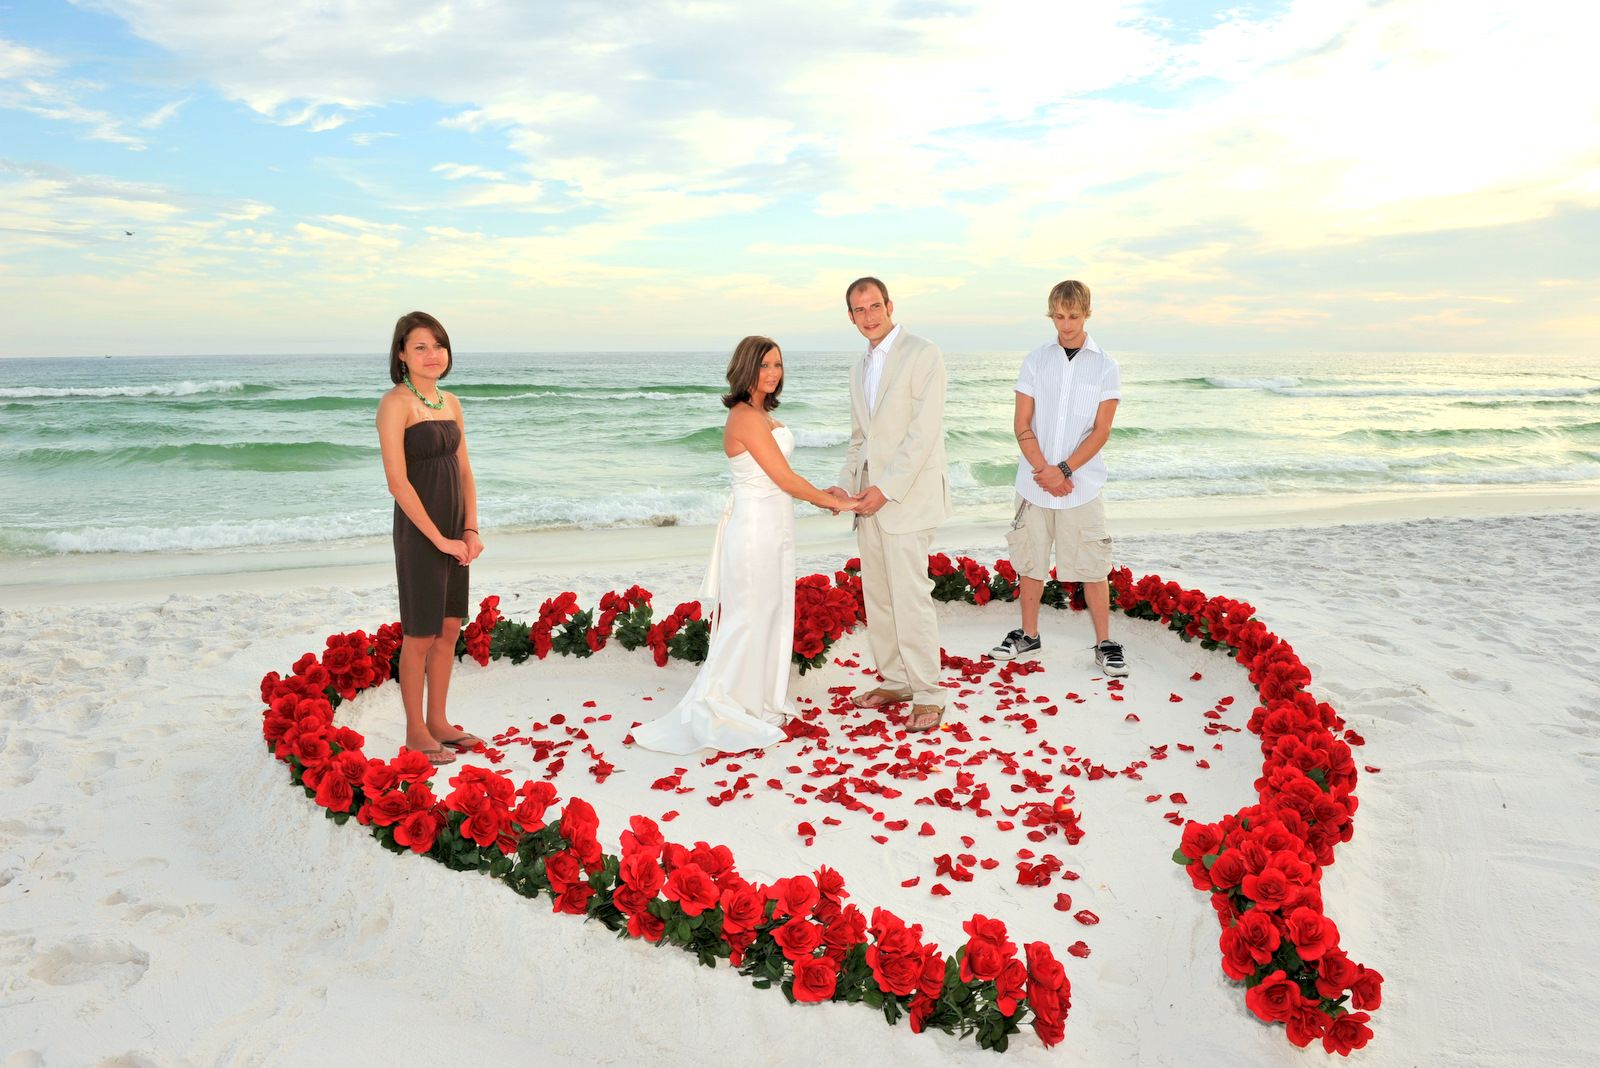 Heart Shaped White Beach Wedding Idea With Red Flowers